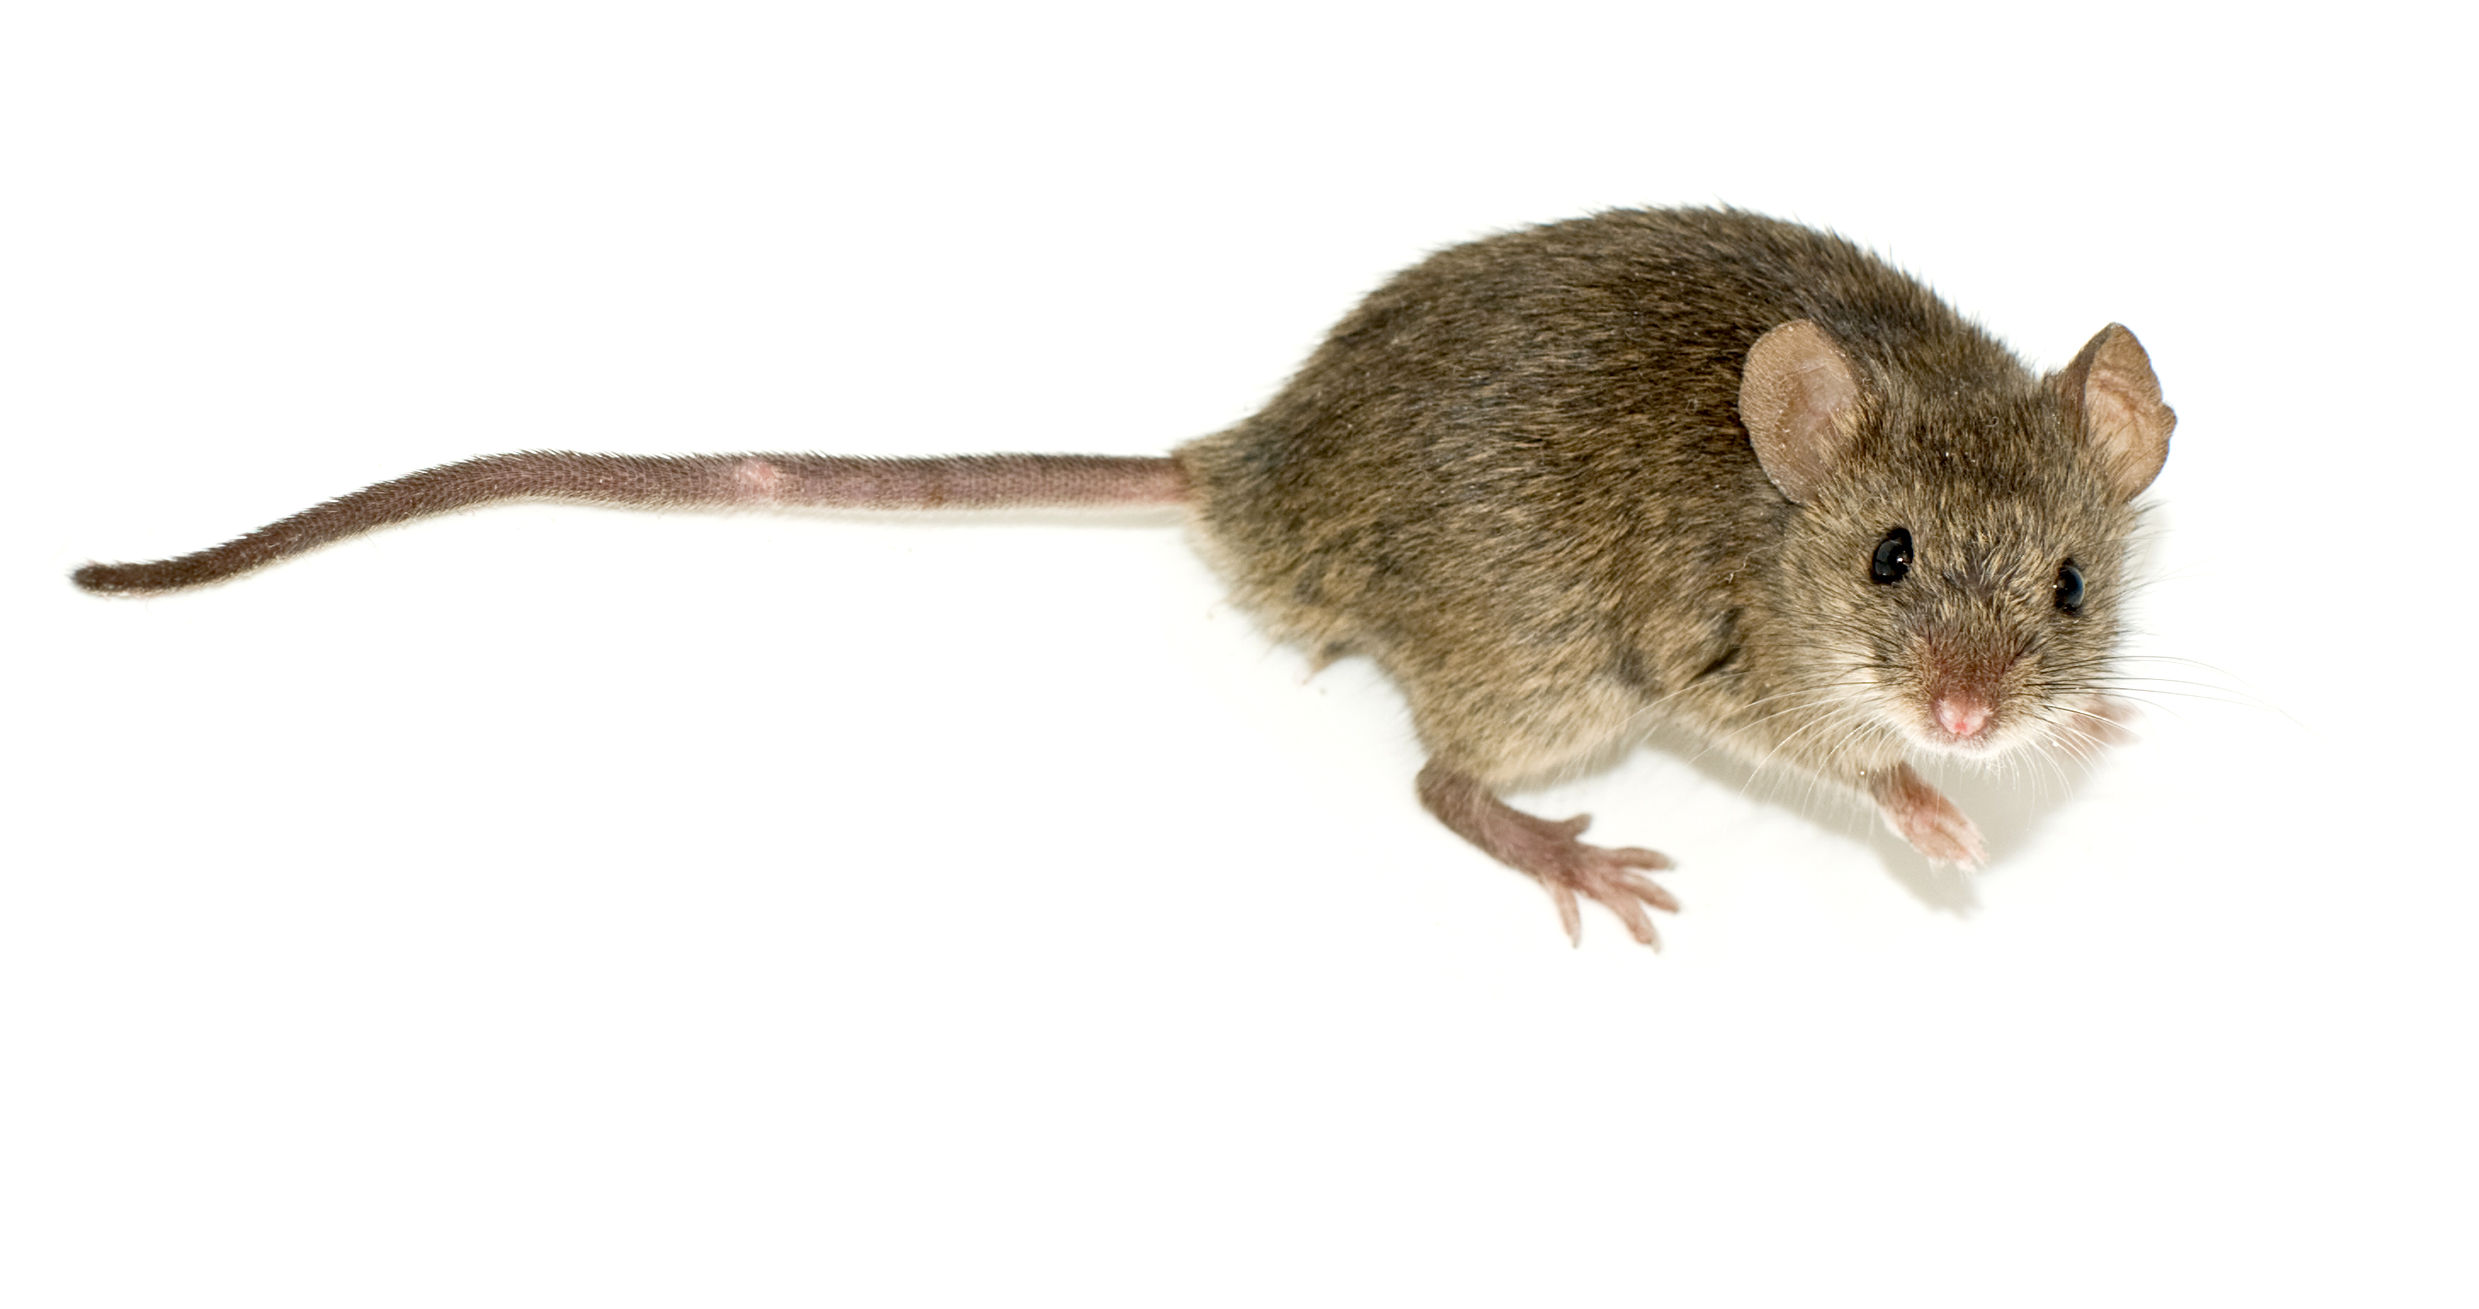 a photograh of a brown mouse